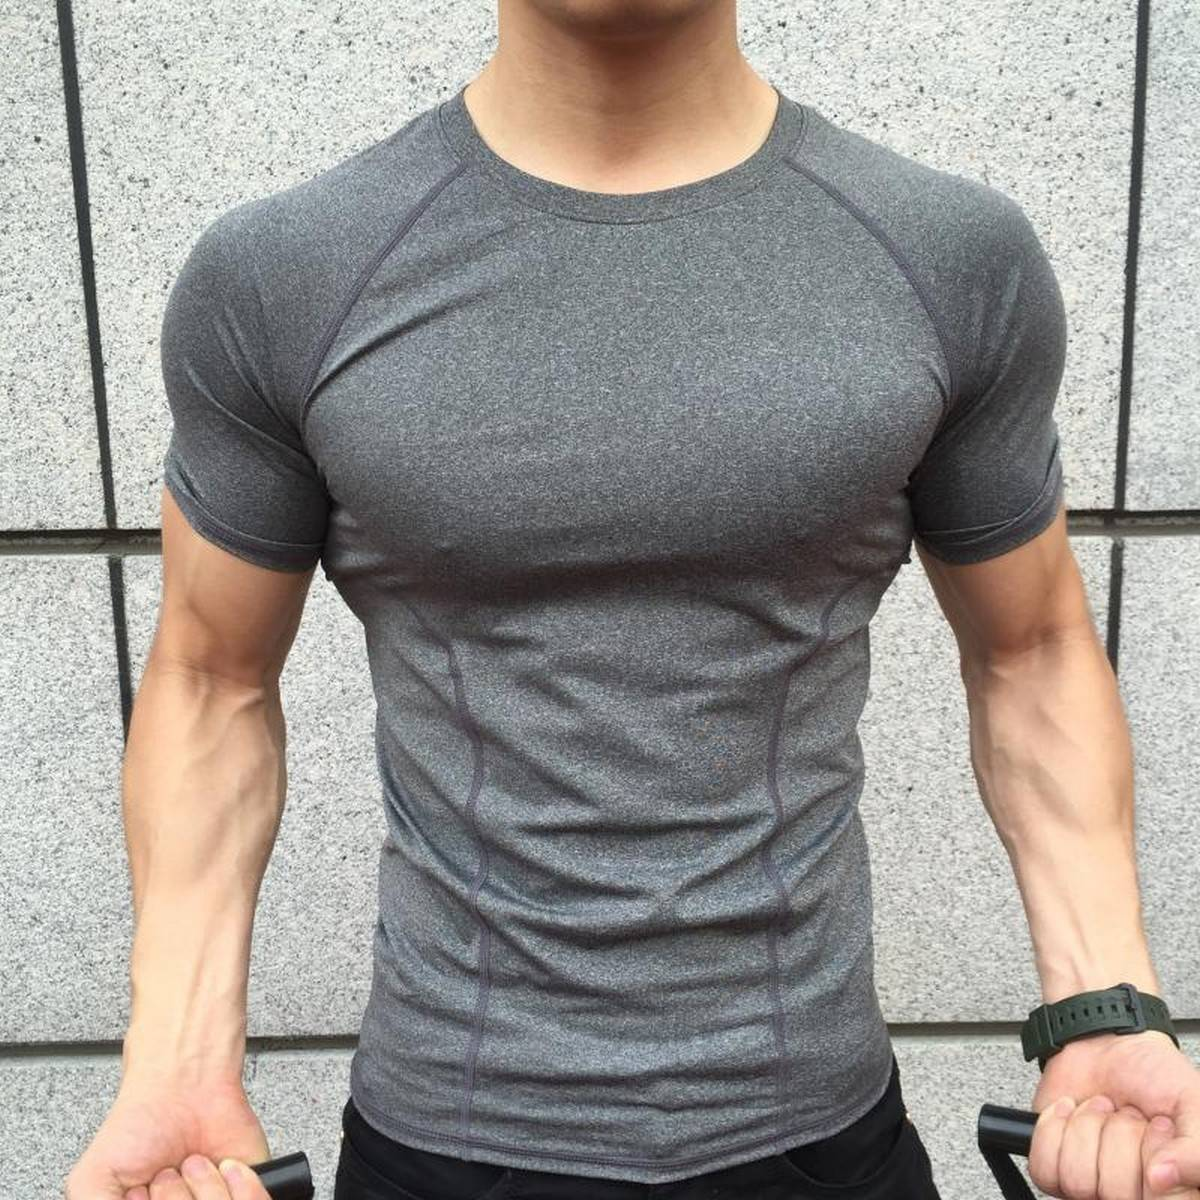 T-Shirt Stretchable Imported Quality Gym Workout Shirt for Boys Casual T-Shirts - Short Sleeves T Shirts for Man Round Neck Shirts - Casual Tops - O-Shaped Haif Sleeves Tee Shirts 100% Cotton T-Shirts - Sports t-Shirts for Adults